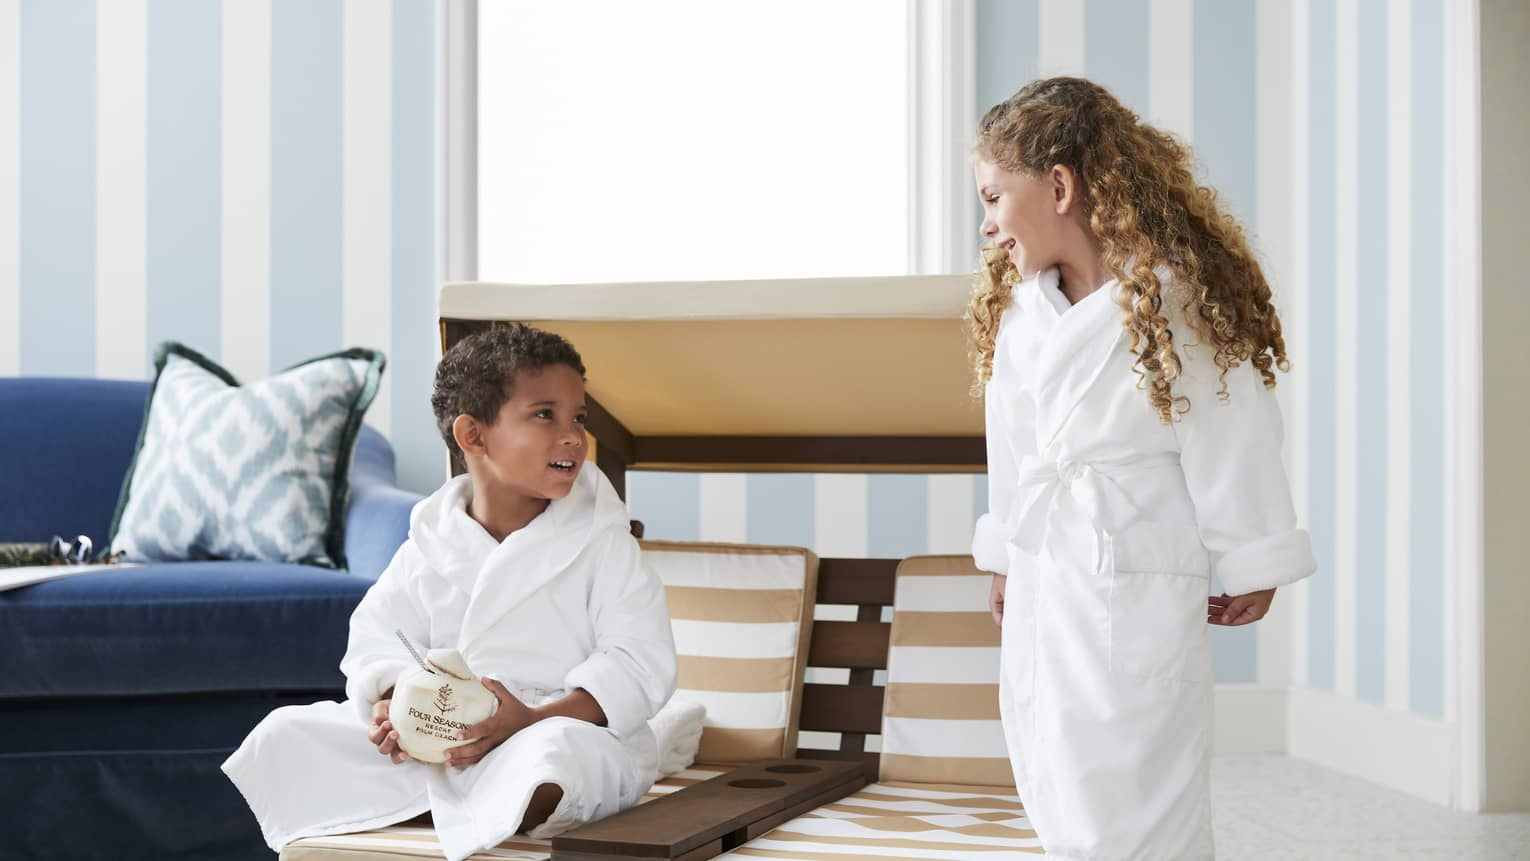 Young guests relax in white robes and enjoy a coconut beverage